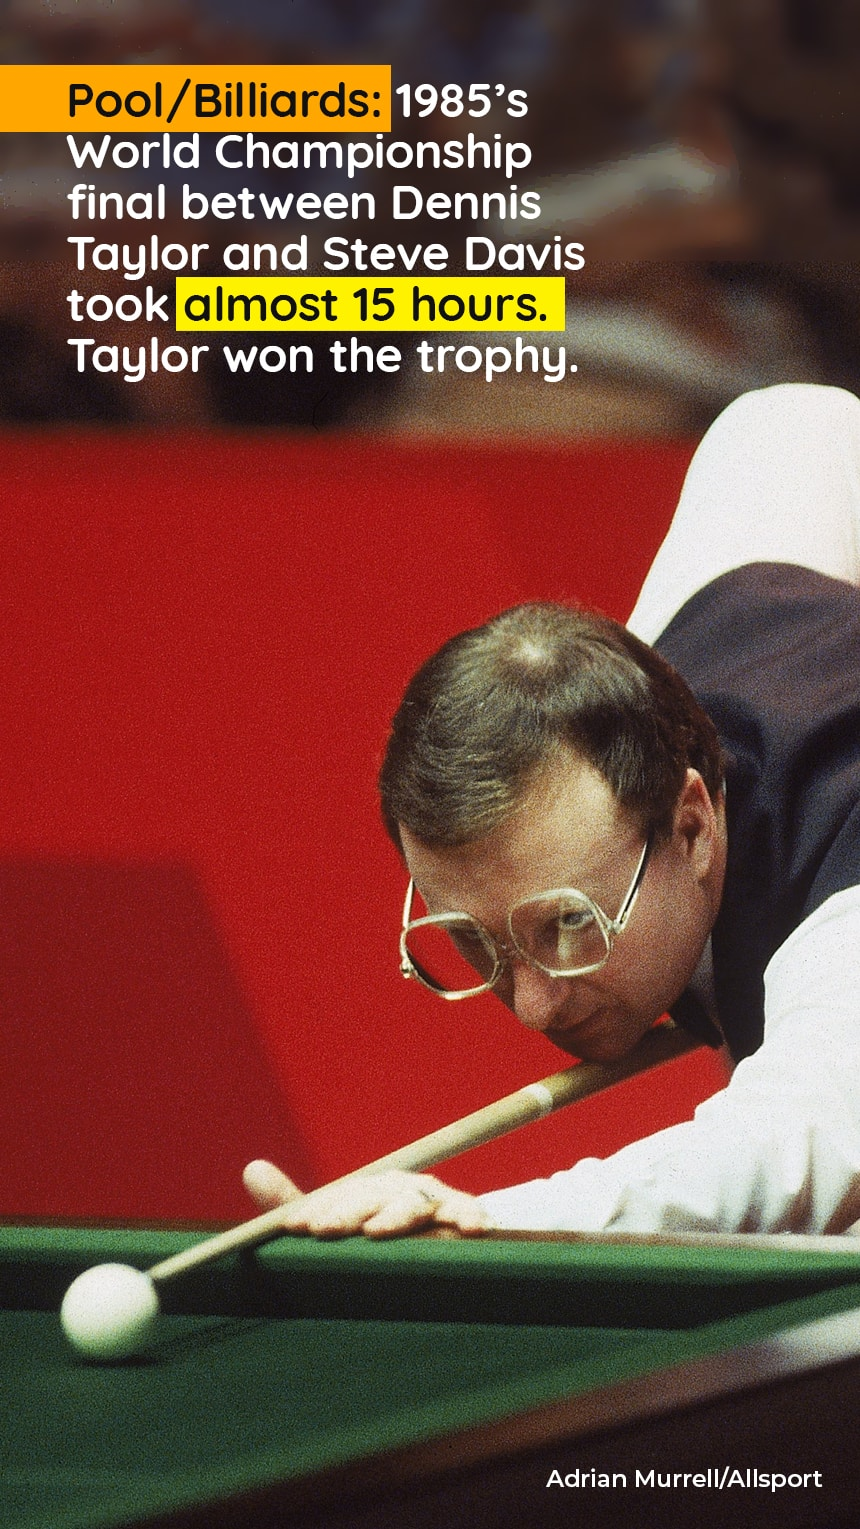 Pool/Billiards: 1985's World Championship final between Dennis Taylor and Steve Davis took almost 15 hours. Taylor won the trophy.